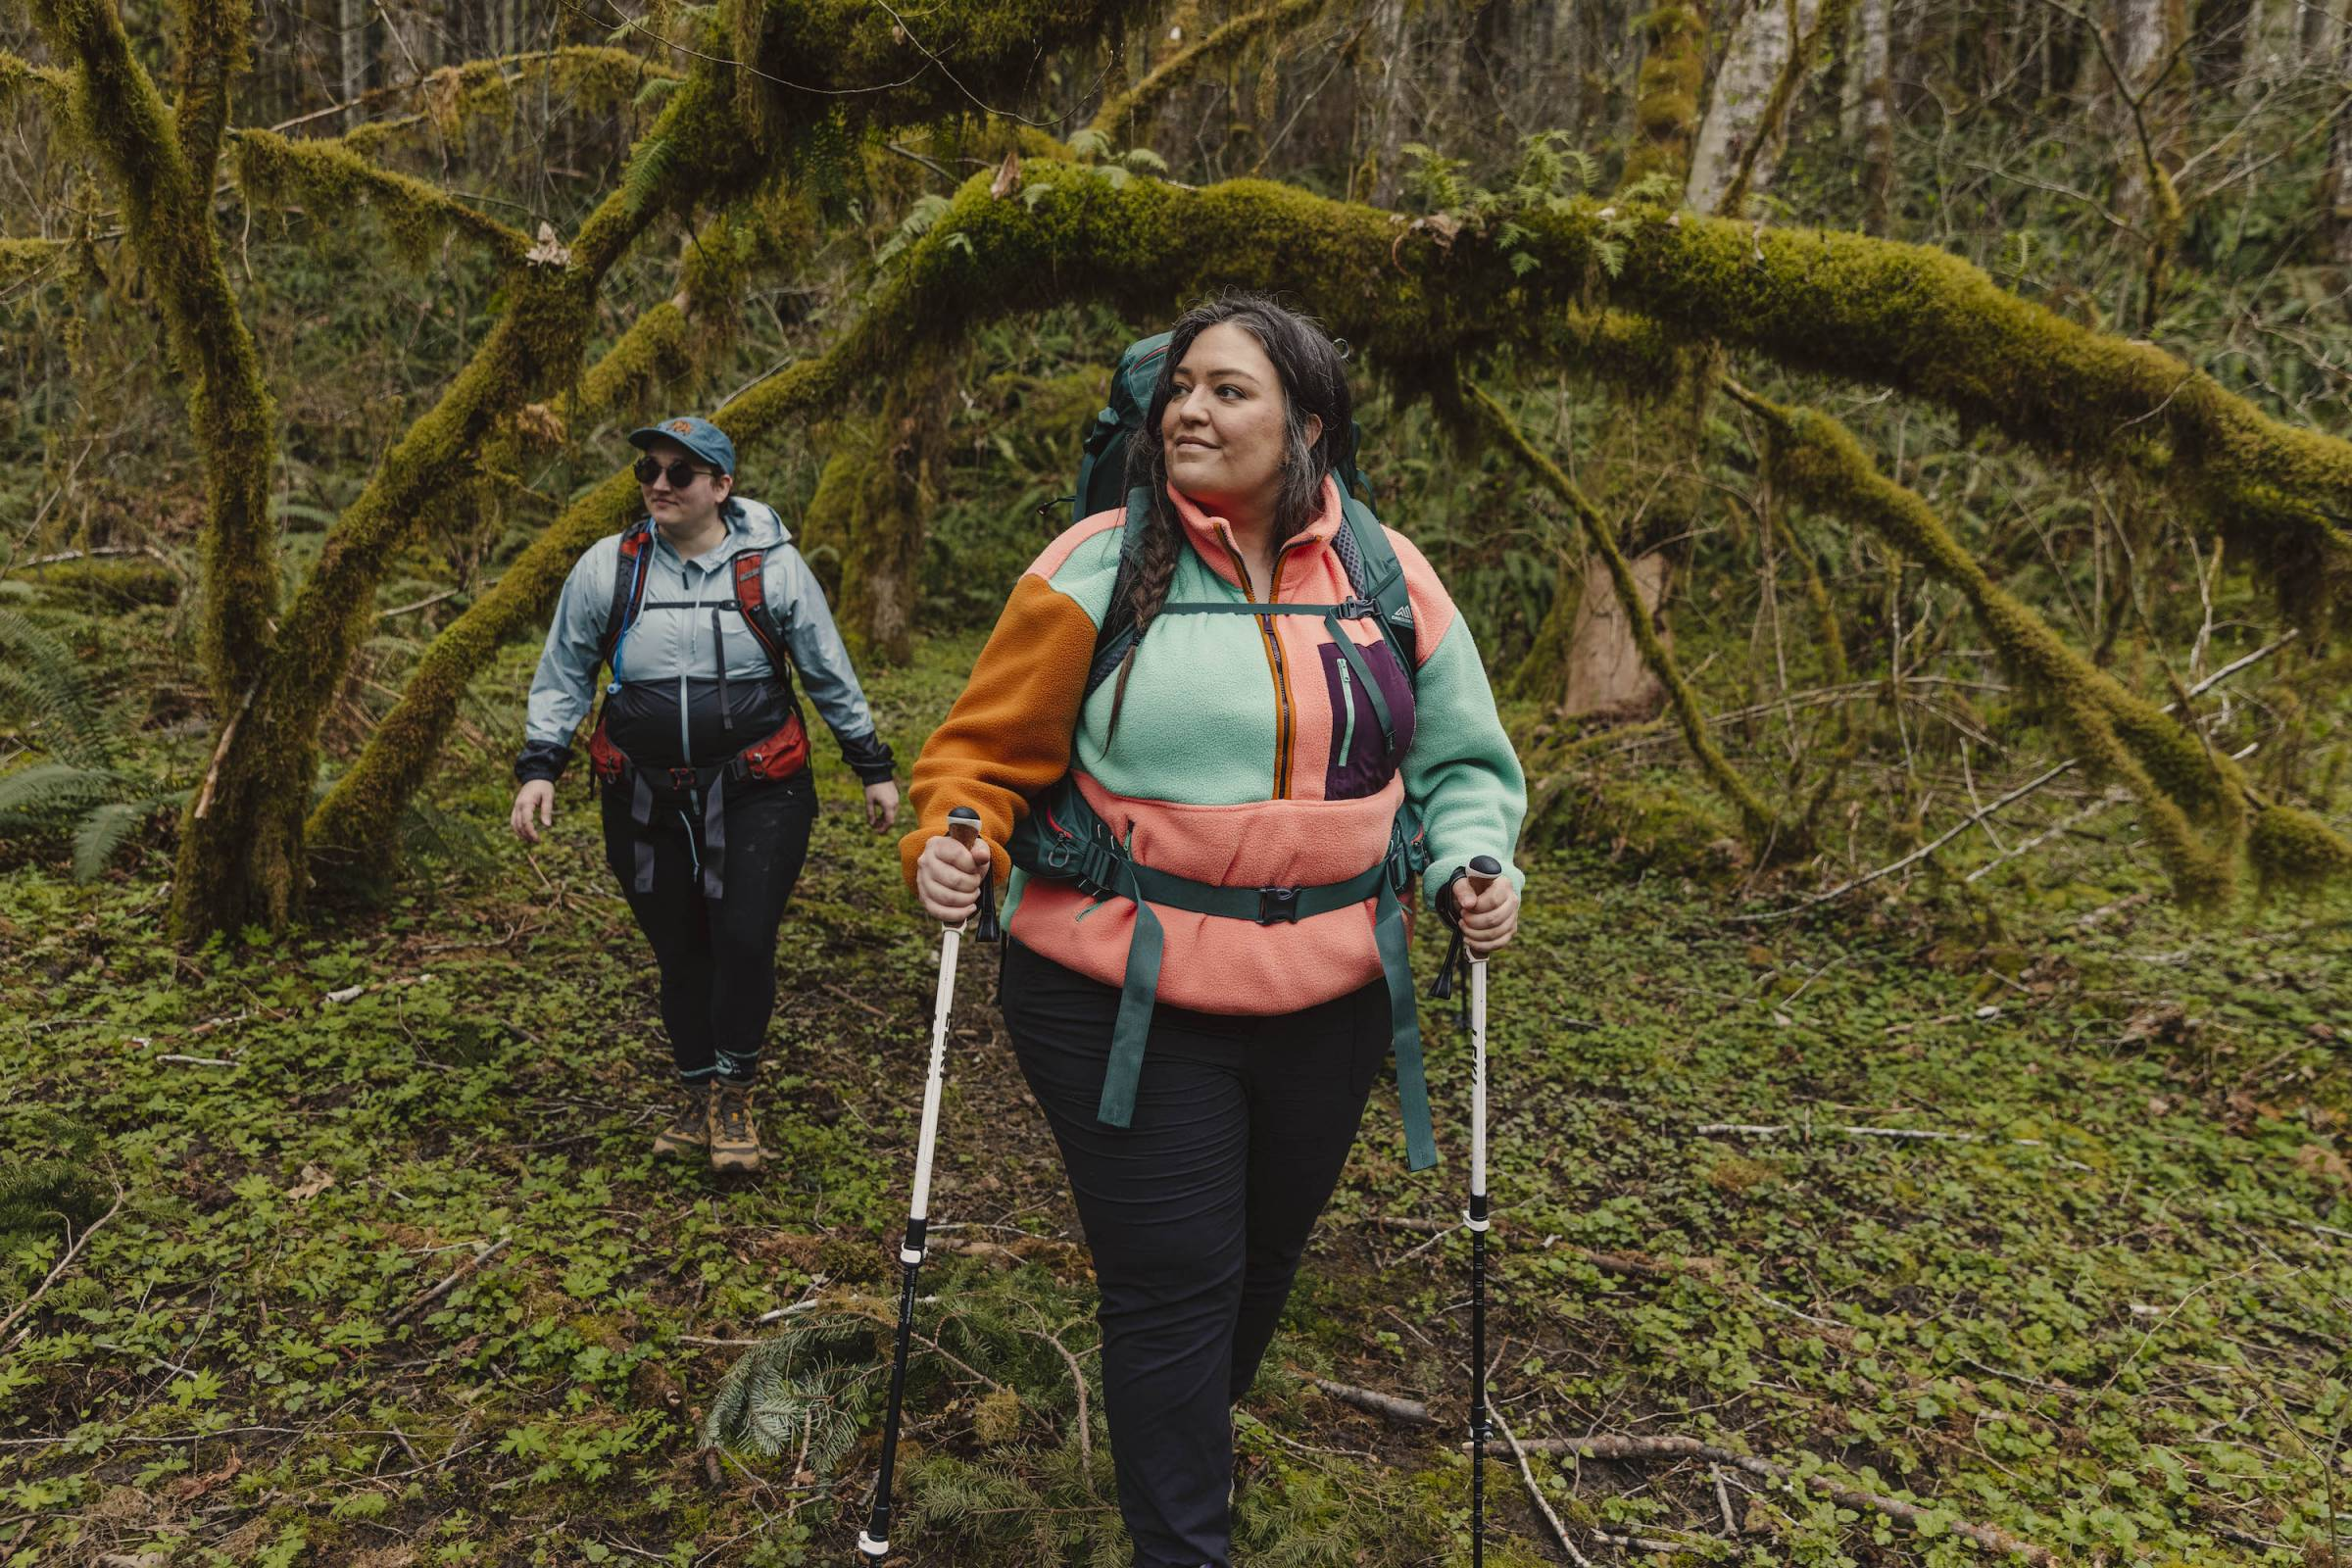 """Jenny Bruso with her """"Unlikely Hikers"""" group hiking in Oregon"""